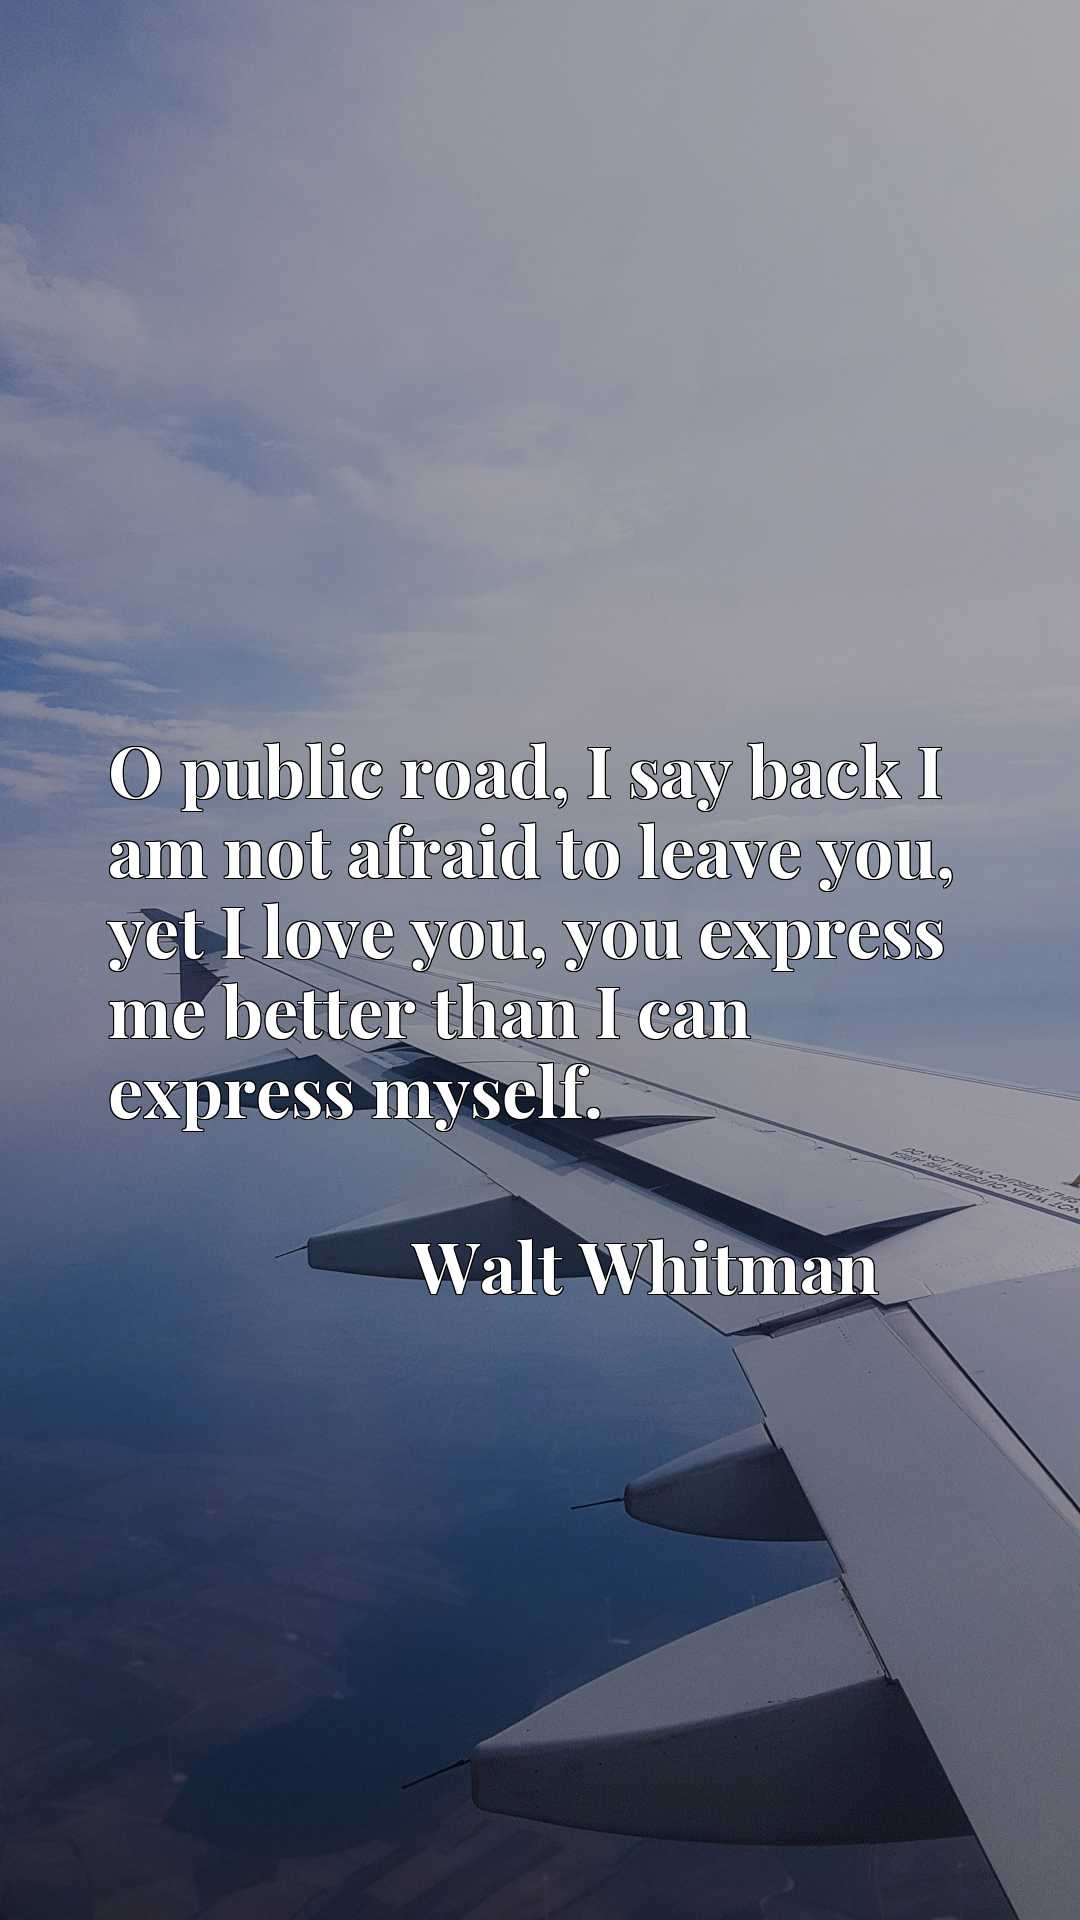 Quote Picture :O public road, I say back I am not afraid to leave you, yet I love you, you express me better than I can express myself.